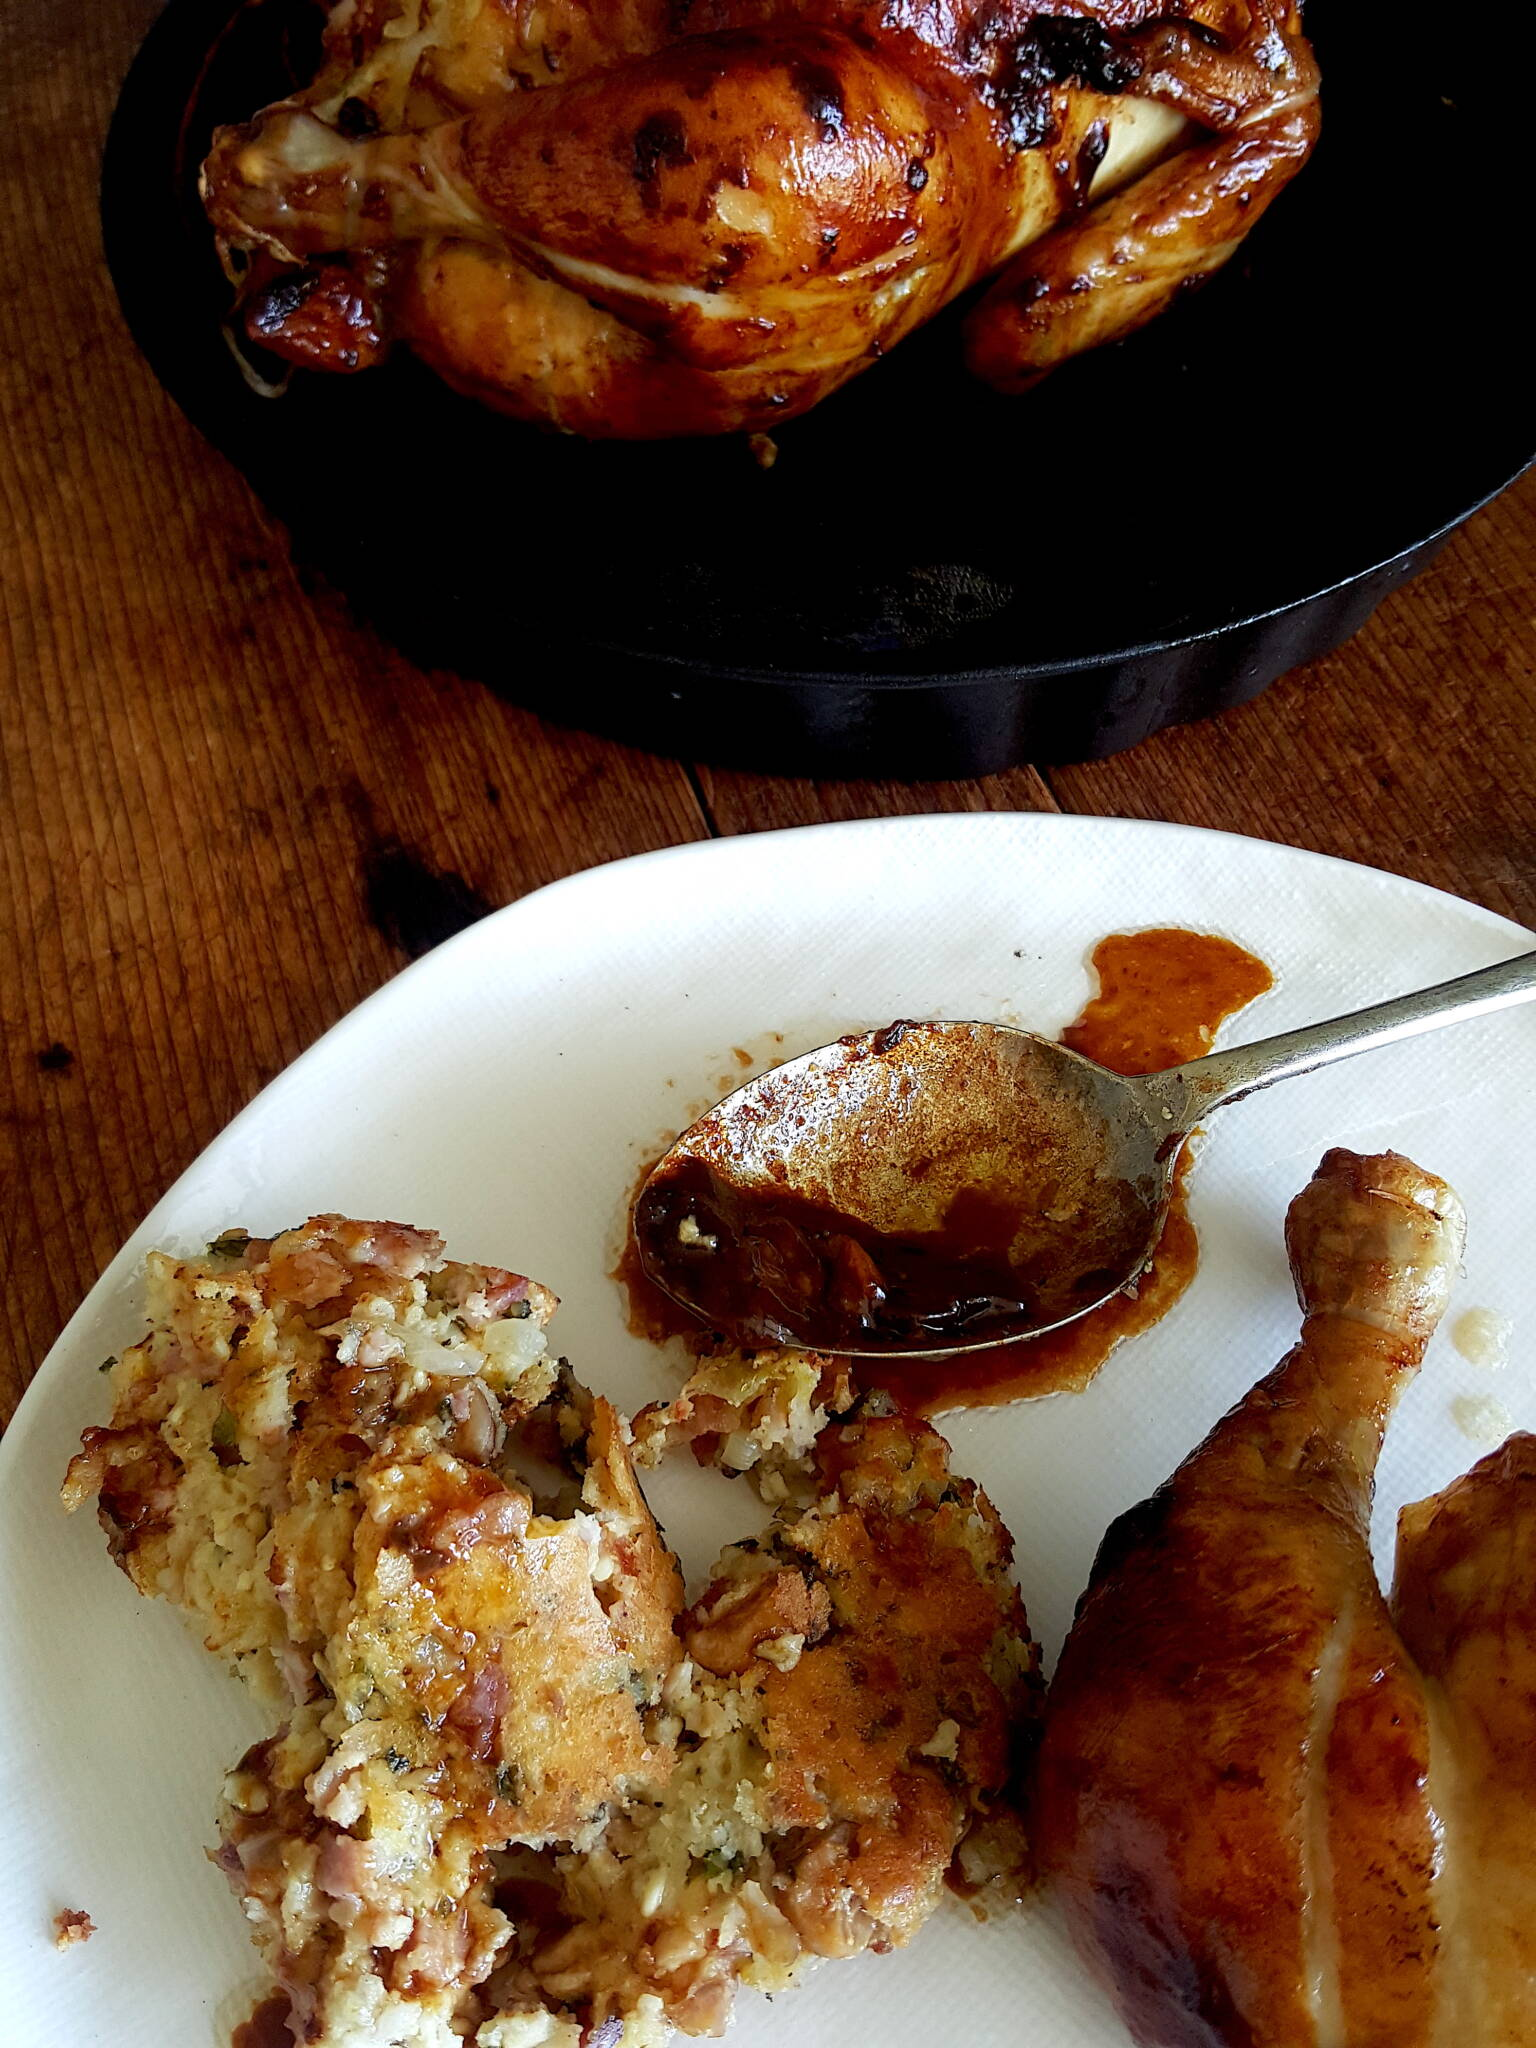 Delicious sticky goo from roasted chicken